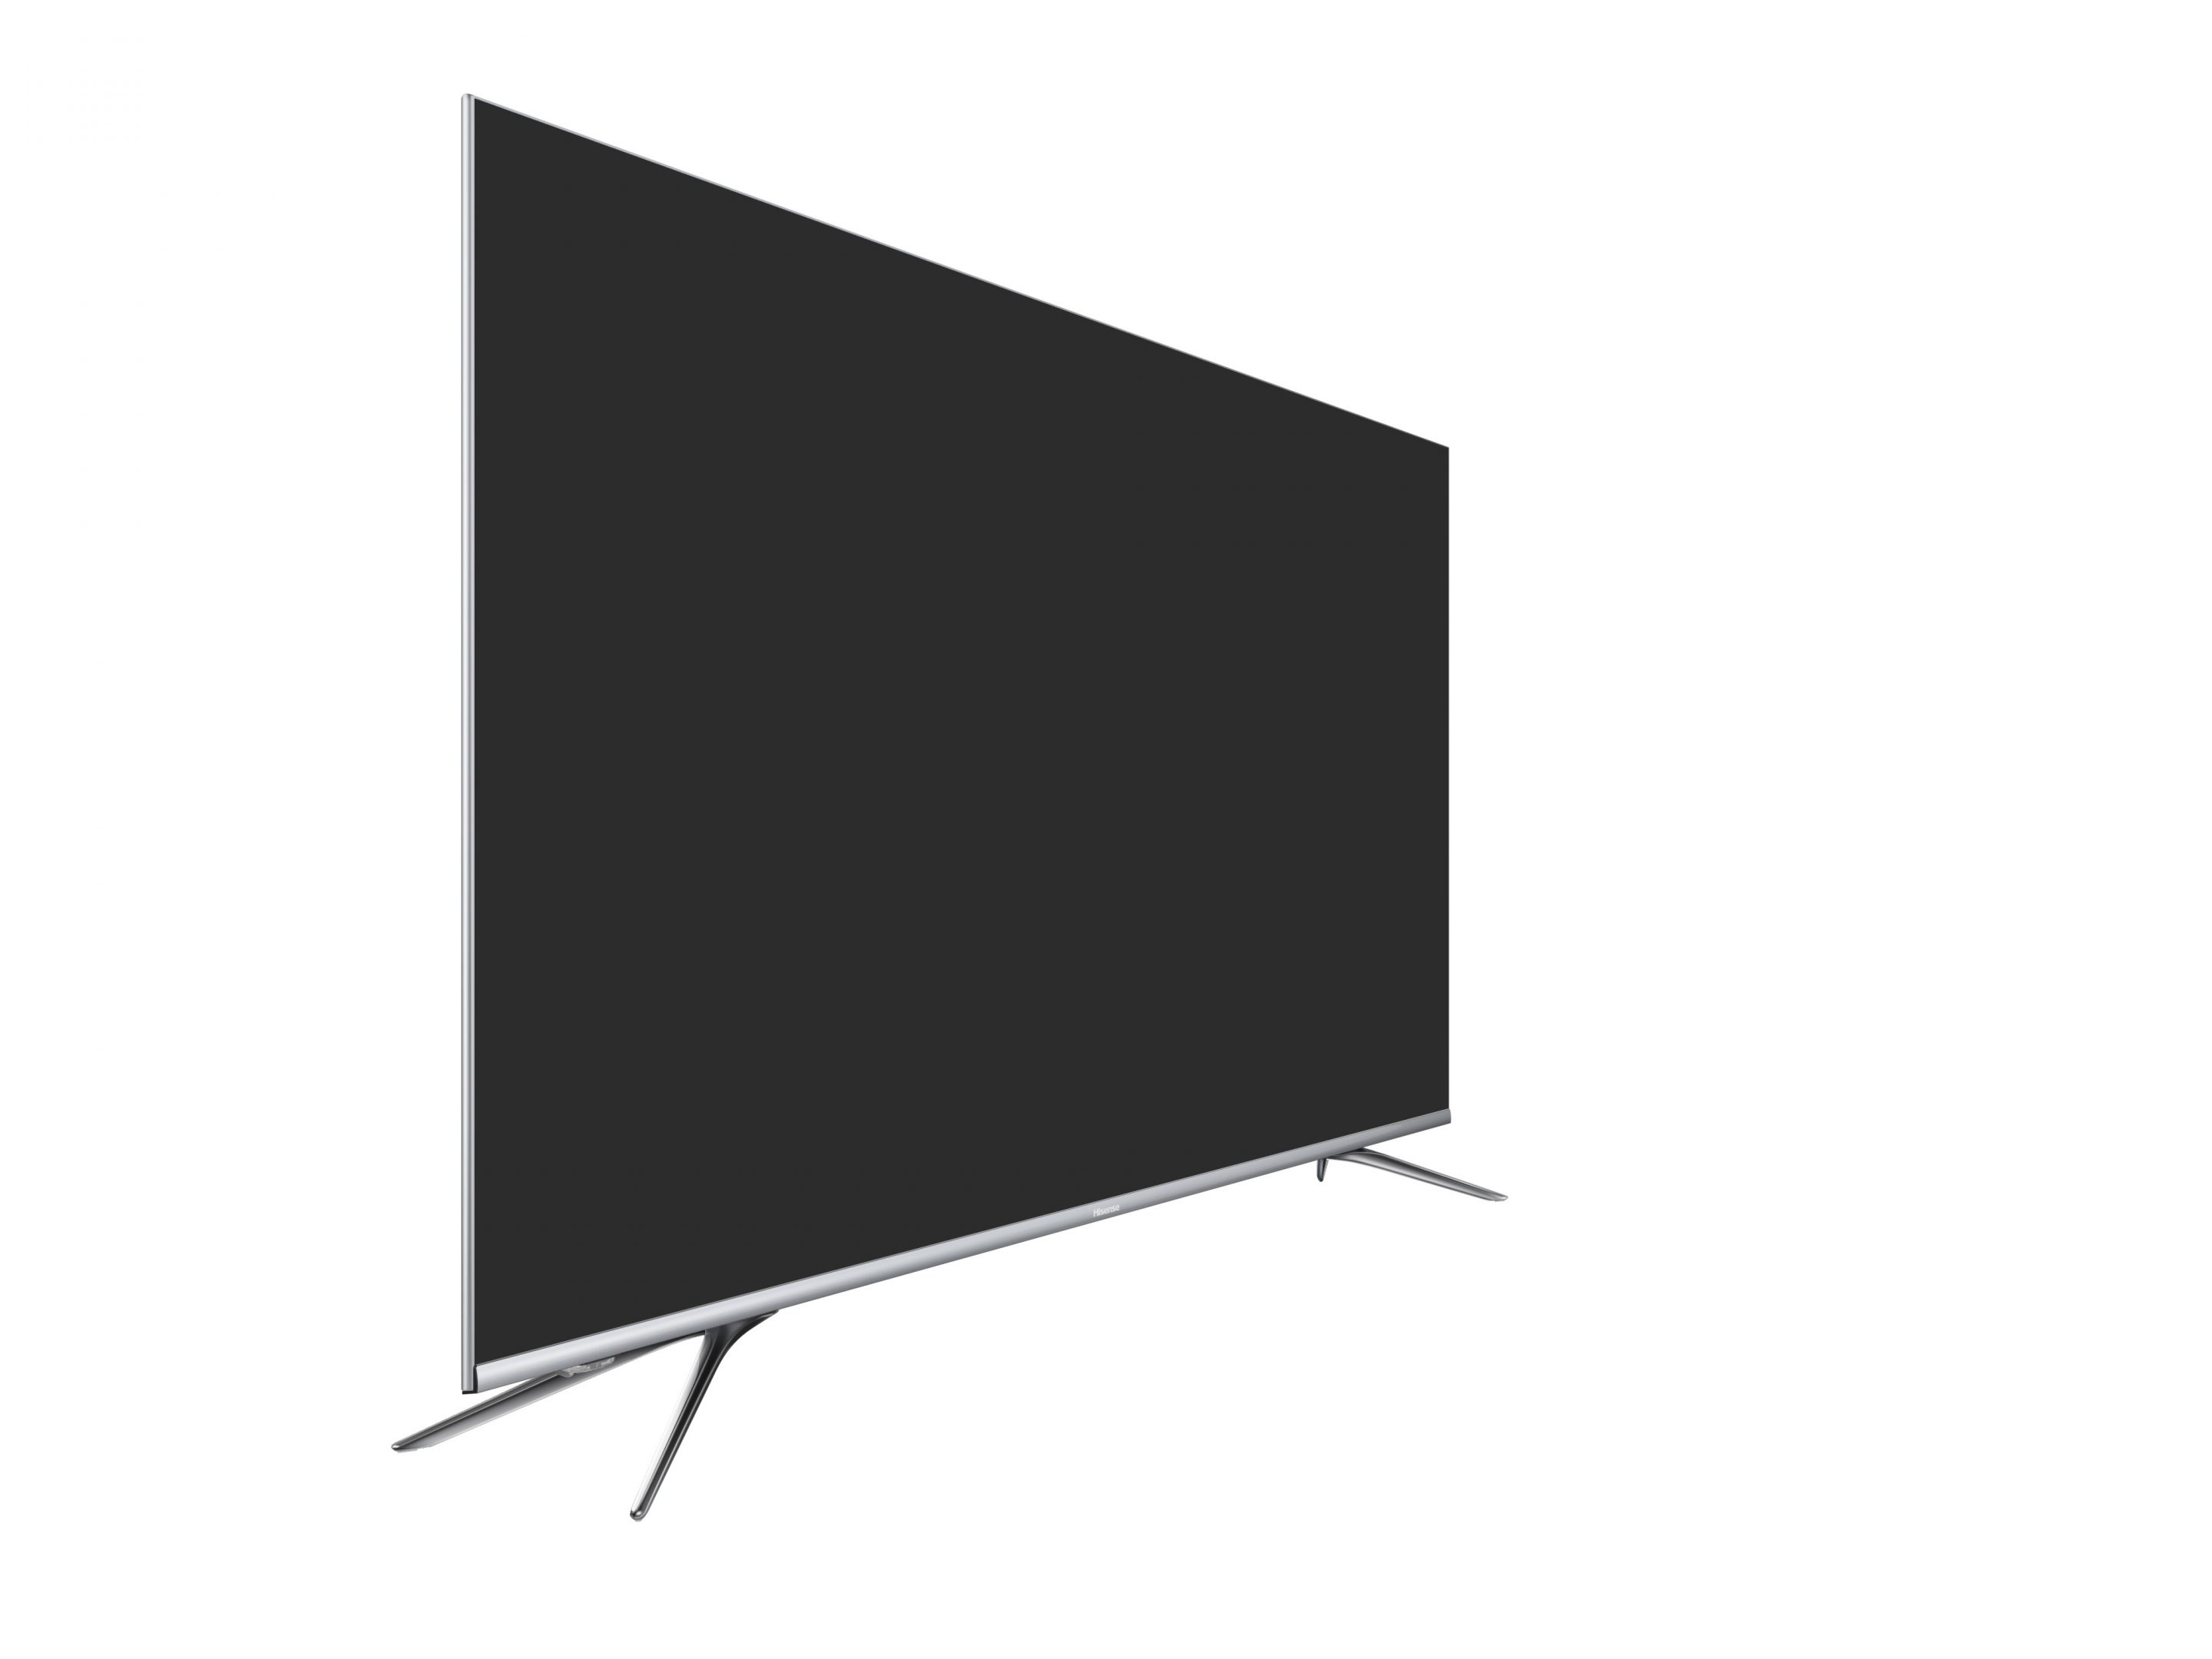 How To Remove Apps From Hisense Tv